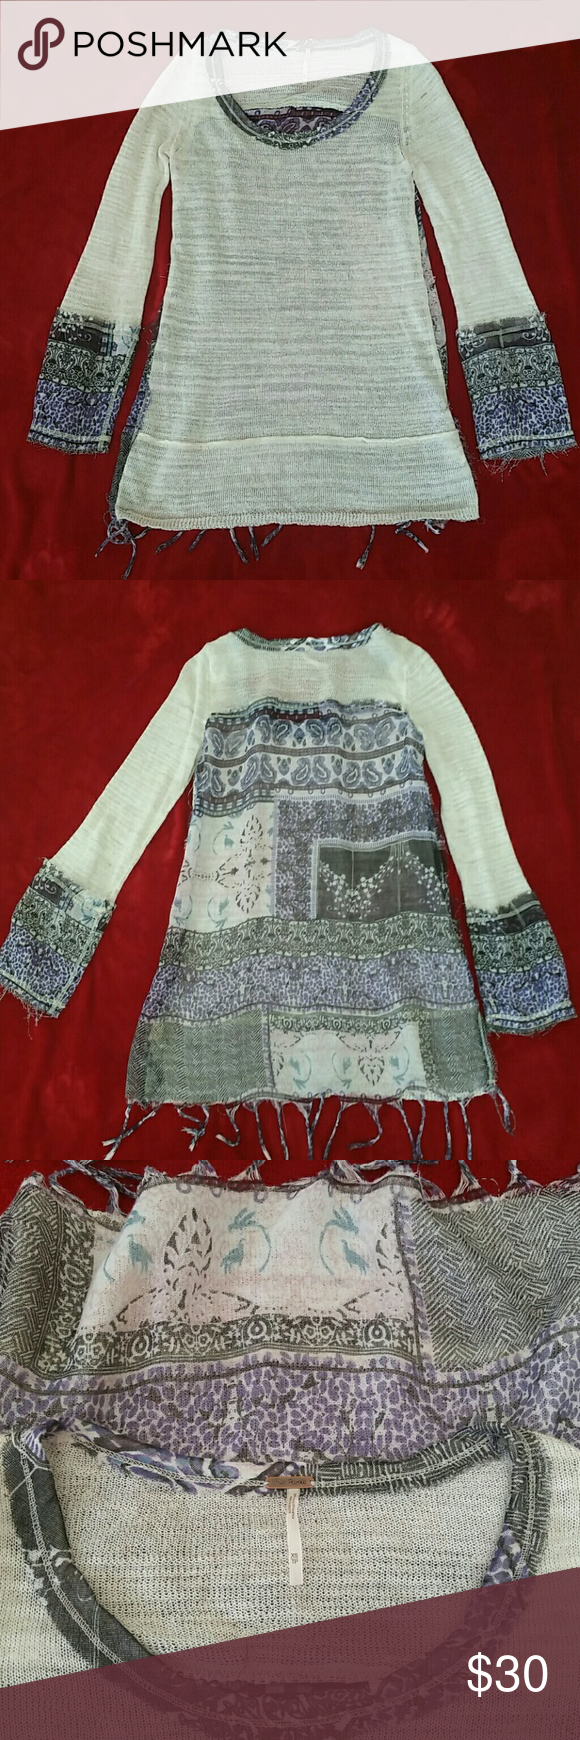 Free People tunic Light brown front. Purple, blue, white, and black back. The back of the shirt is sheer. Soft material. Fringe bottom seam. Free People Tops Blouses